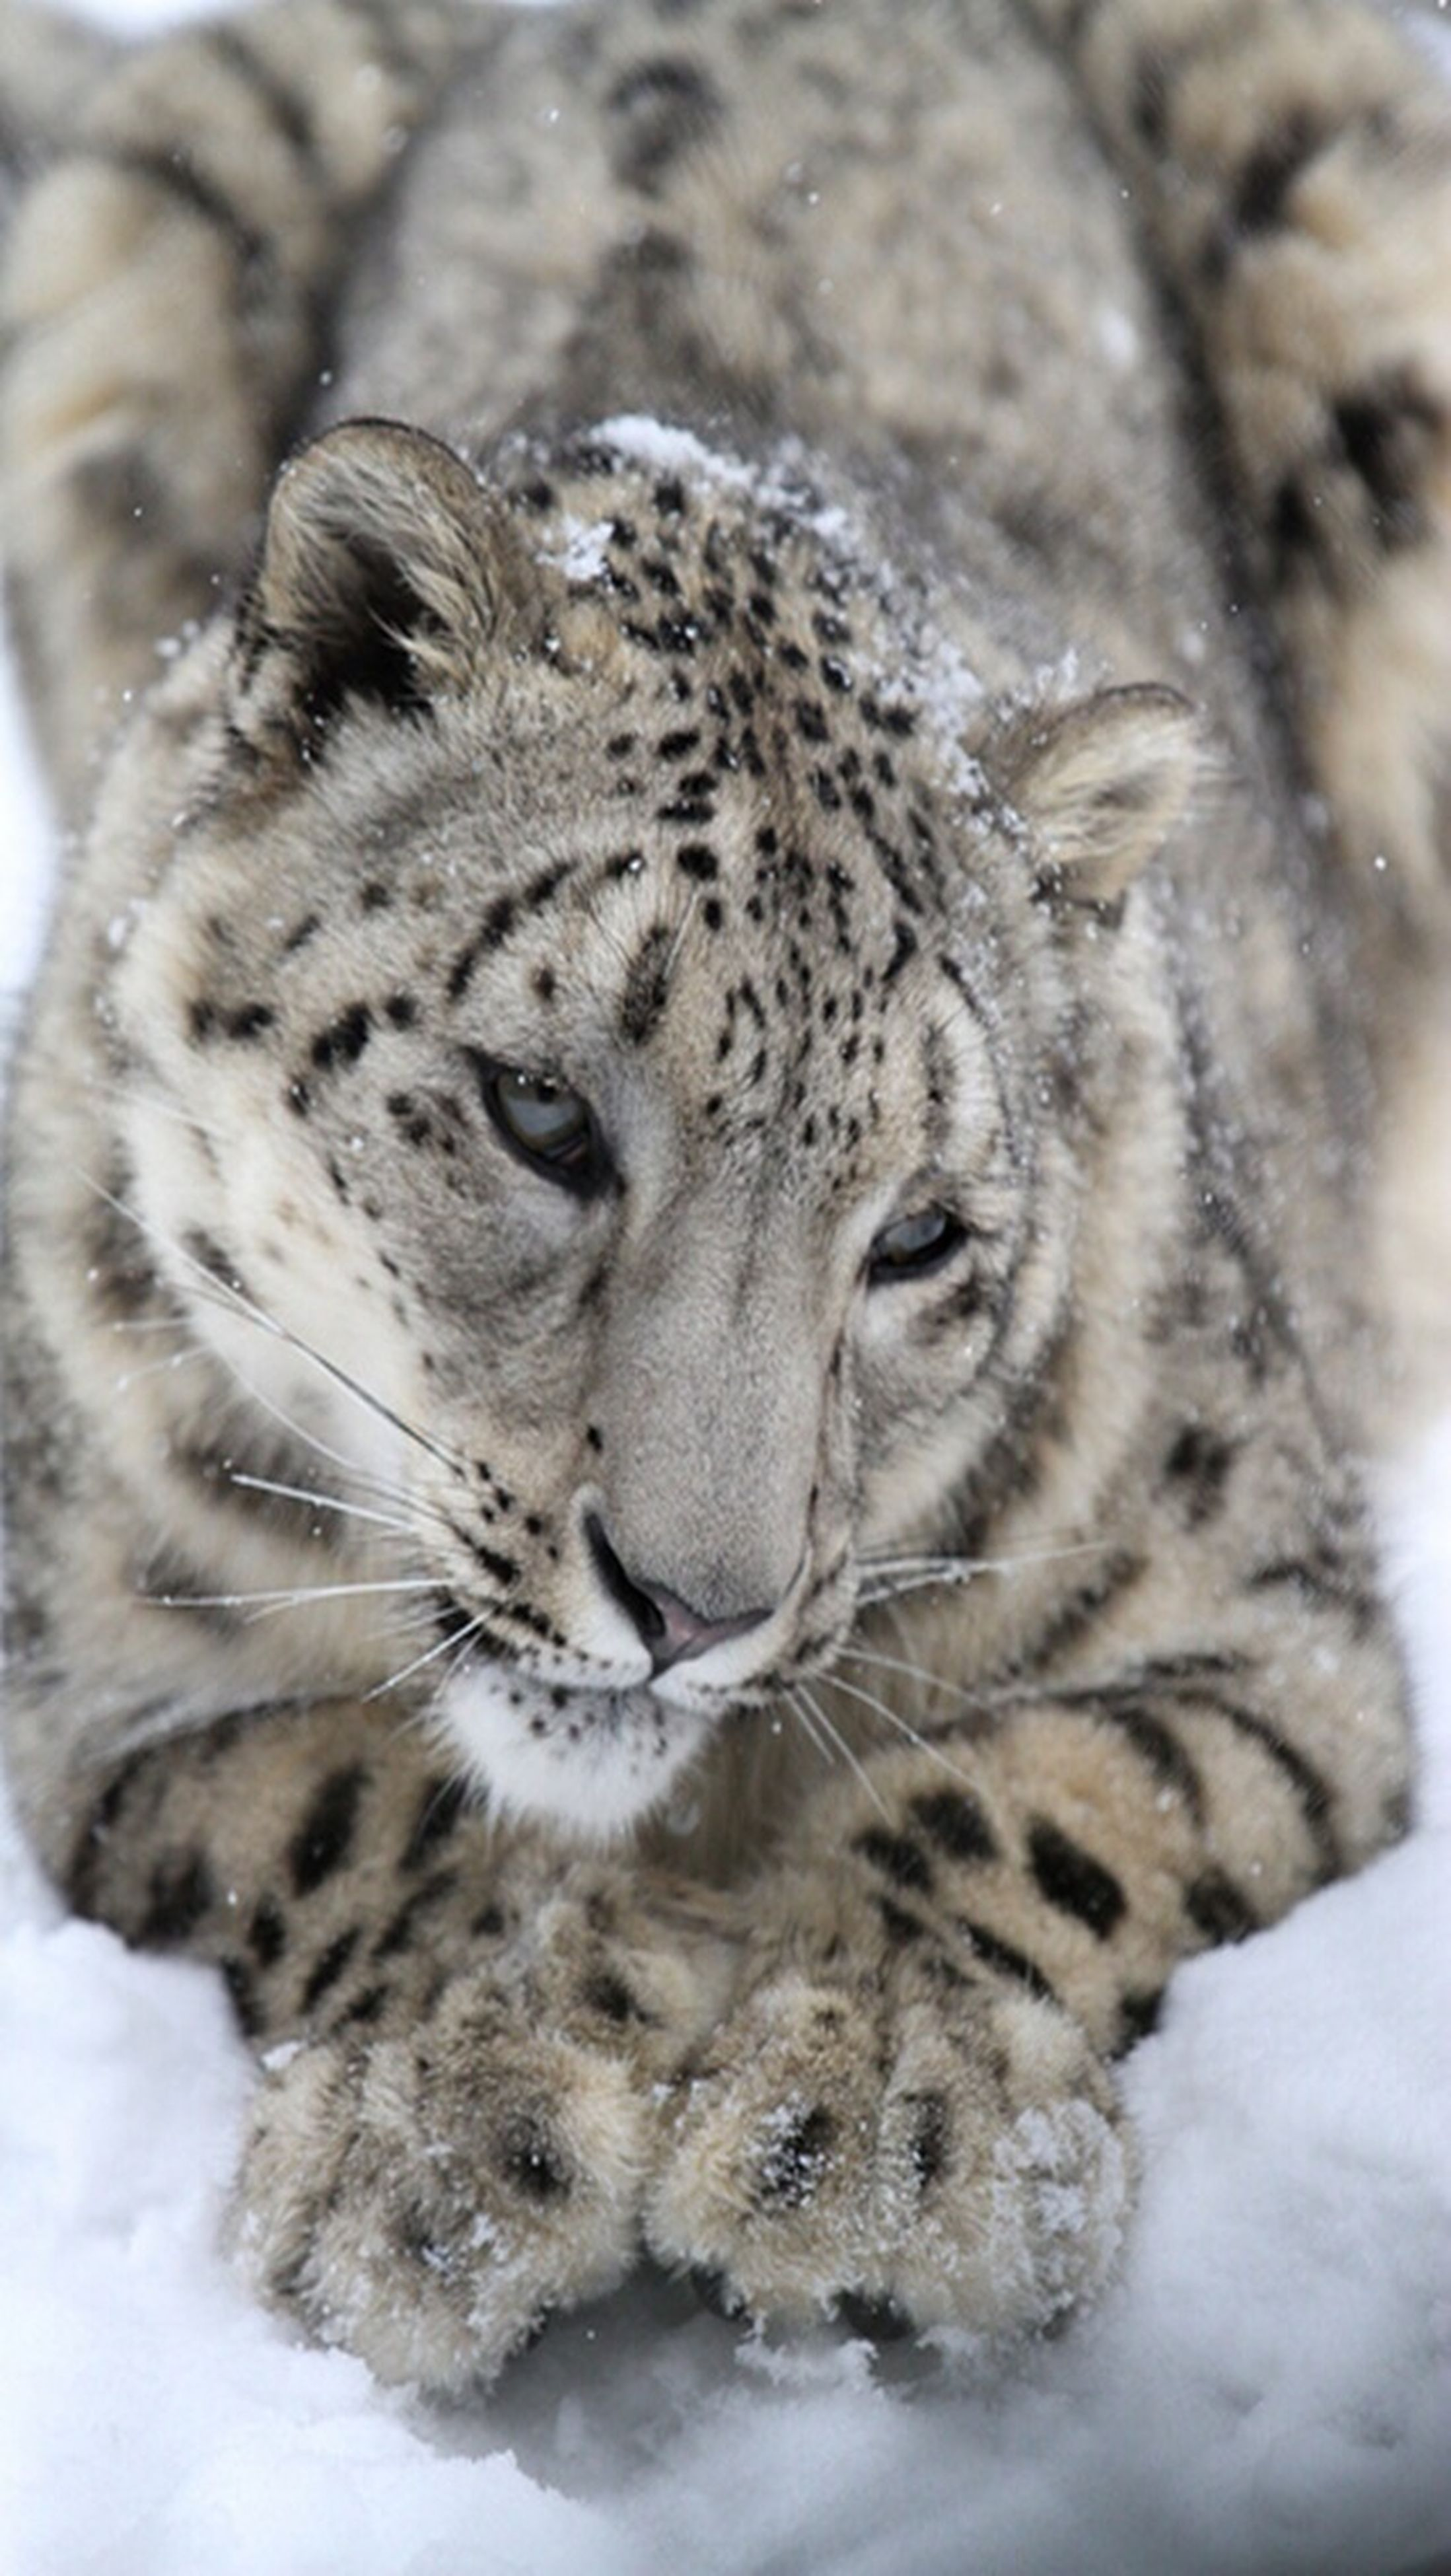 animal themes, animals in the wild, one animal, wildlife, mammal, close-up, animal head, focus on foreground, safari animals, animal markings, animal body part, big cat, tiger, endangered species, no people, portrait, nature, day, outdoors, whisker